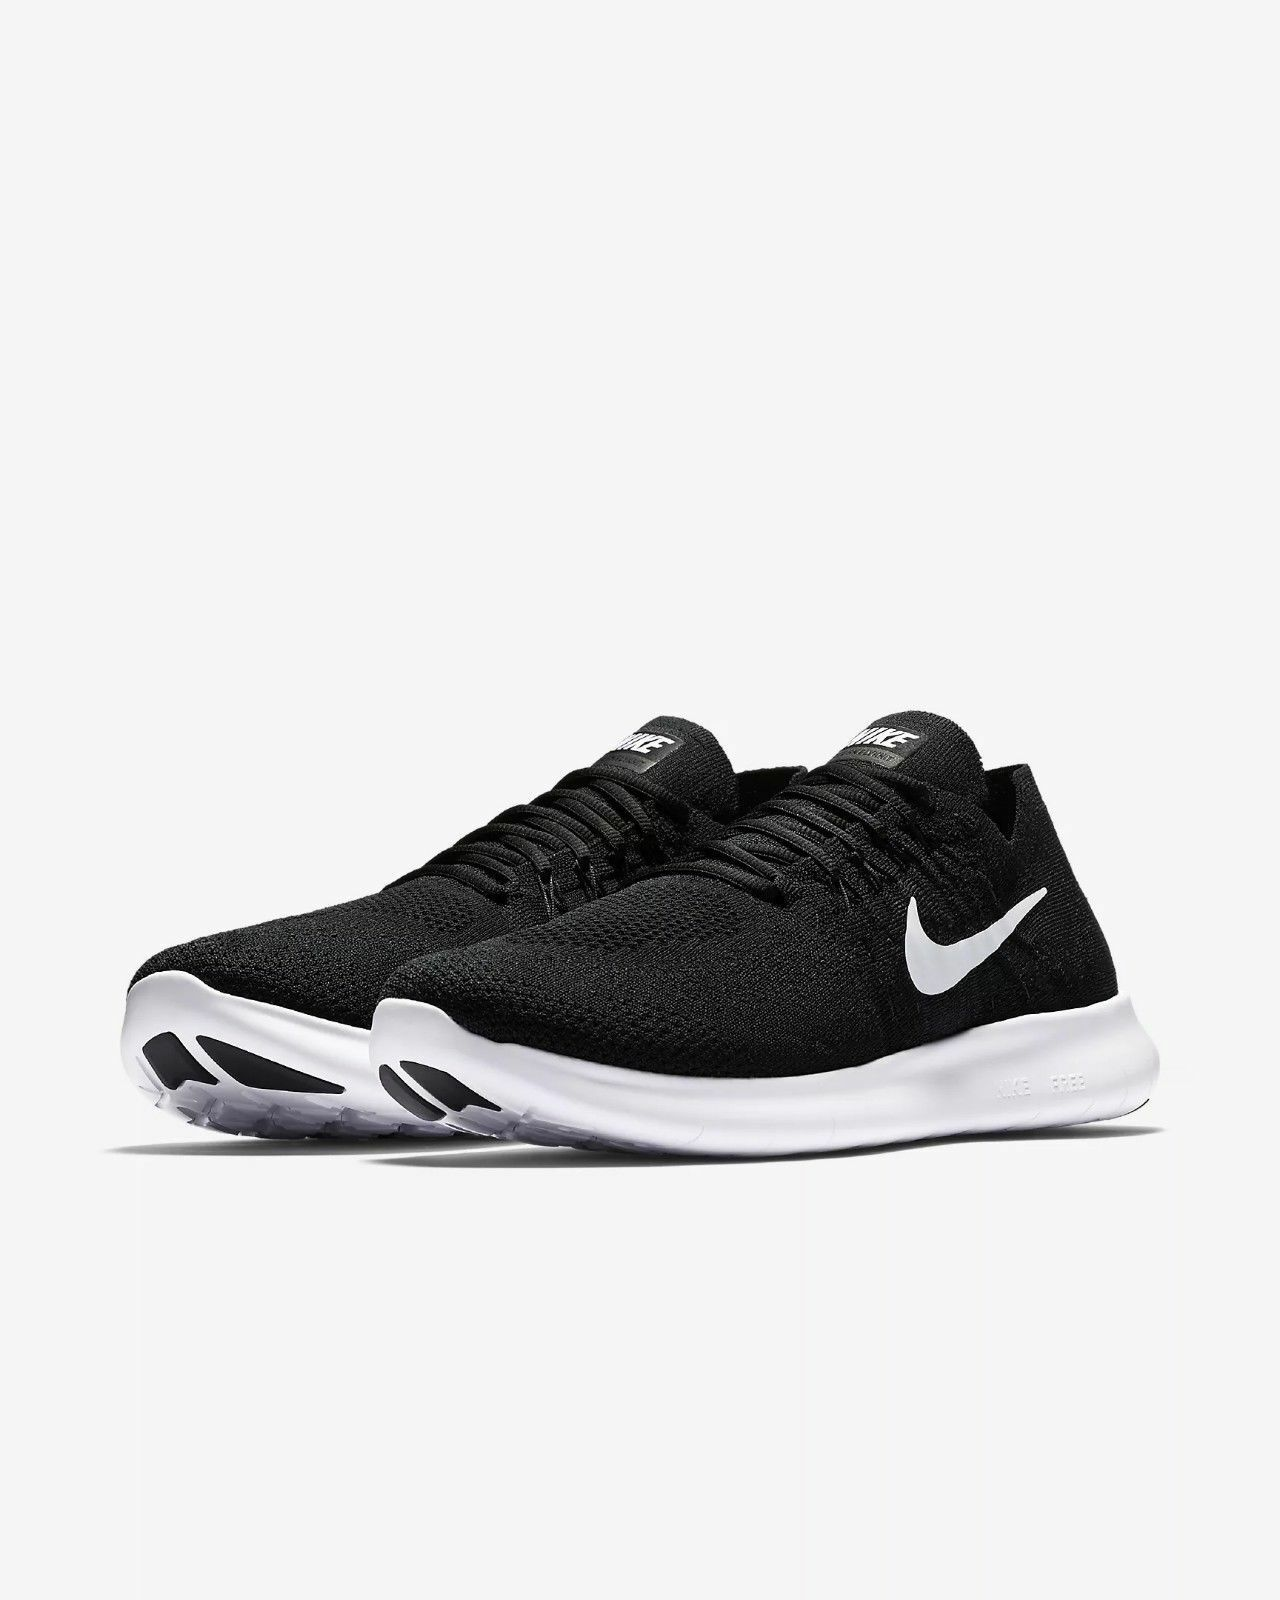 Men's Nike Free RN Flyknit 2017 Running Black White Sizes 8-13 NIB 880843-001